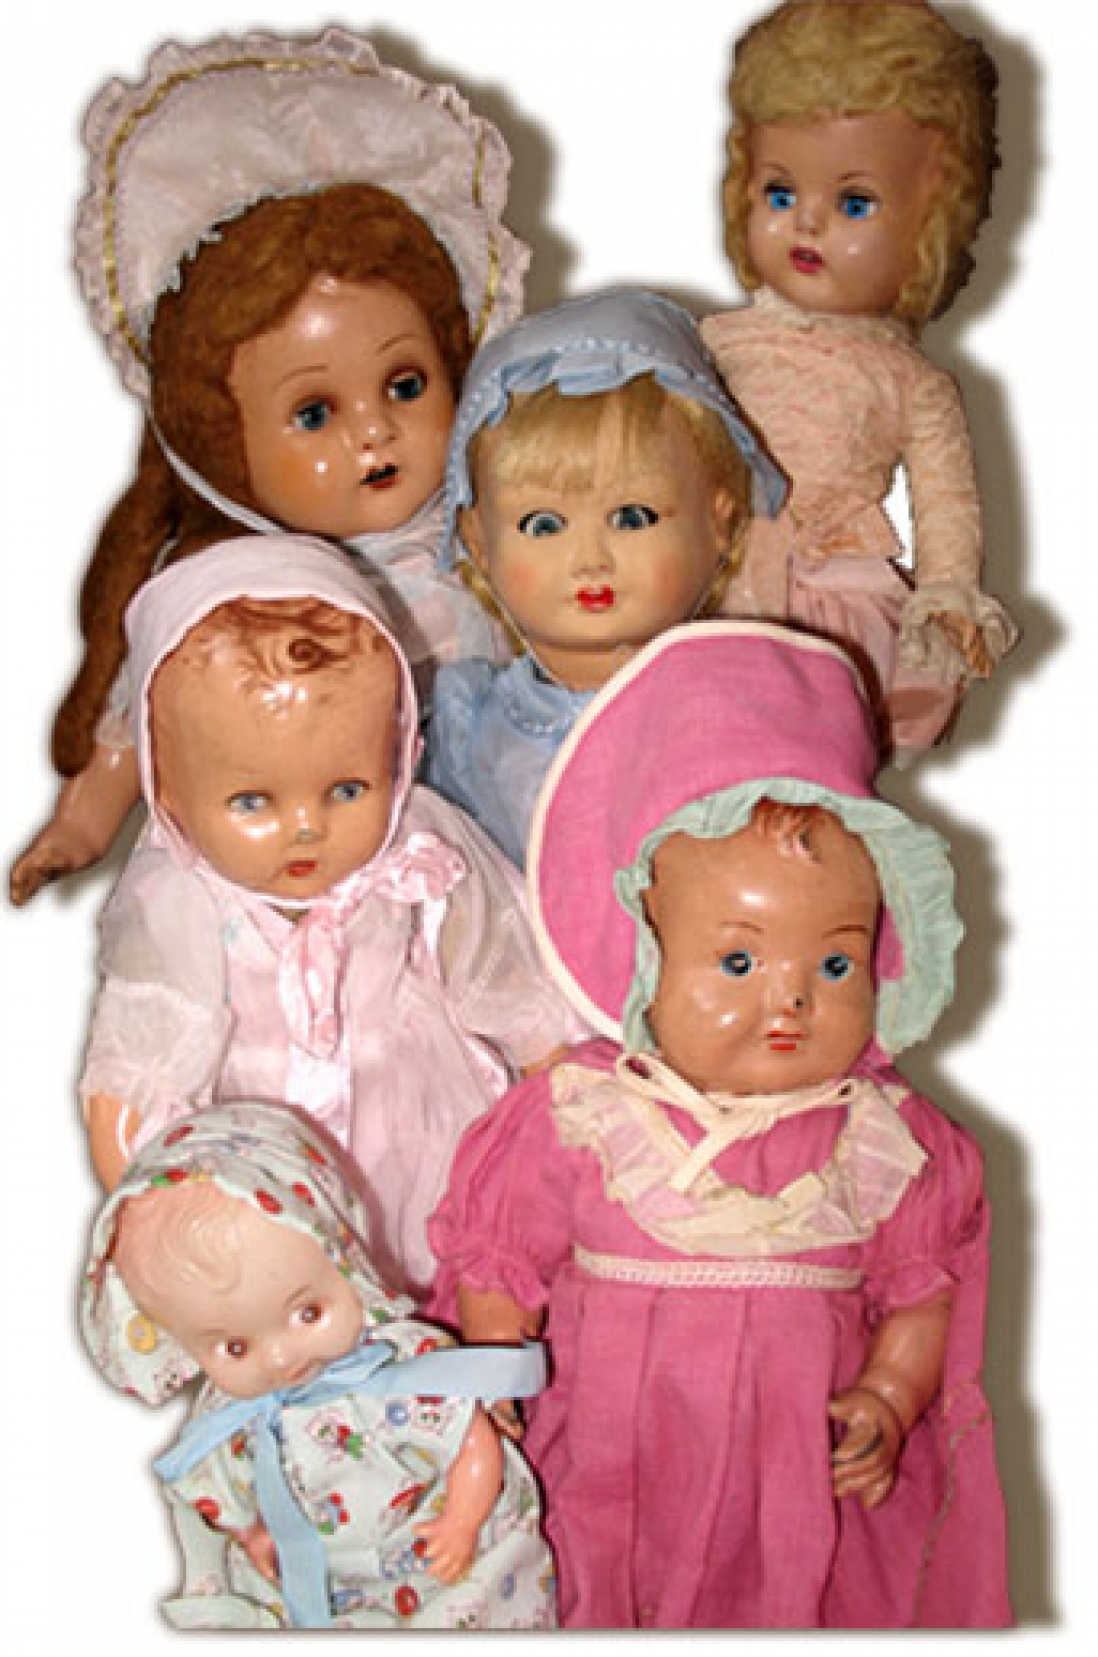 A group pf old-fashioned dolls